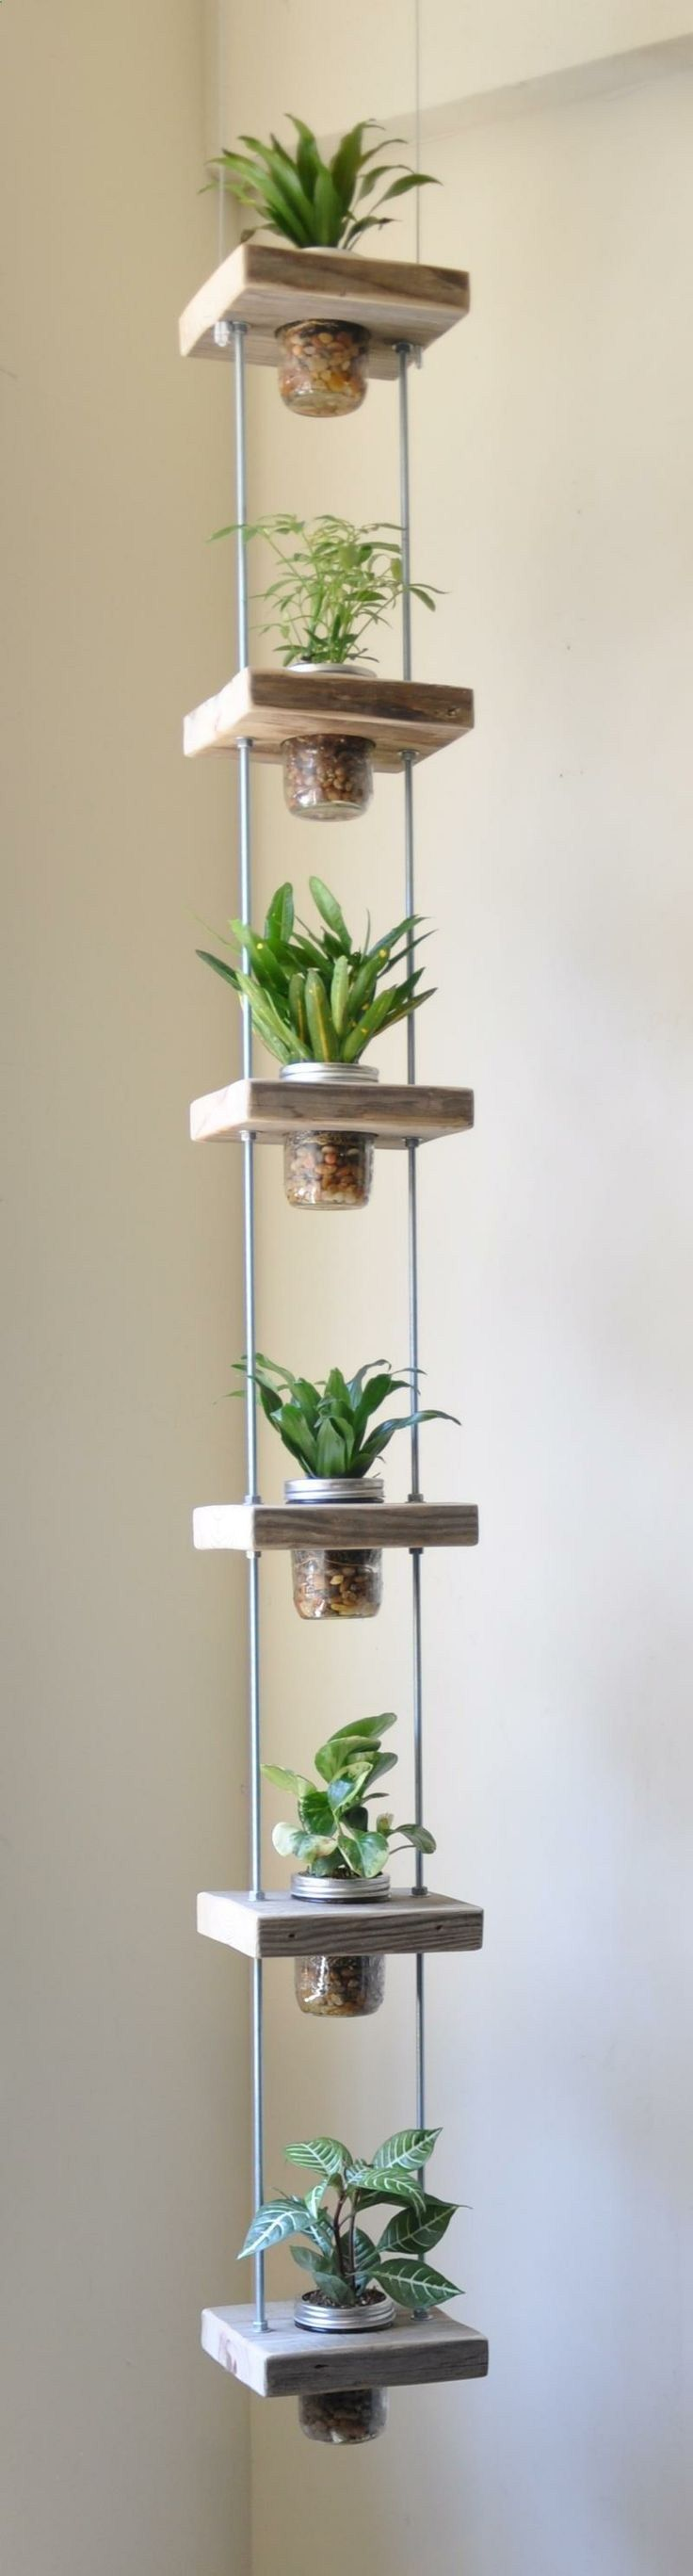 Dont have much space to grow your favorite plants? Try building a vertical garden like this one, designed by Susie Frazier.